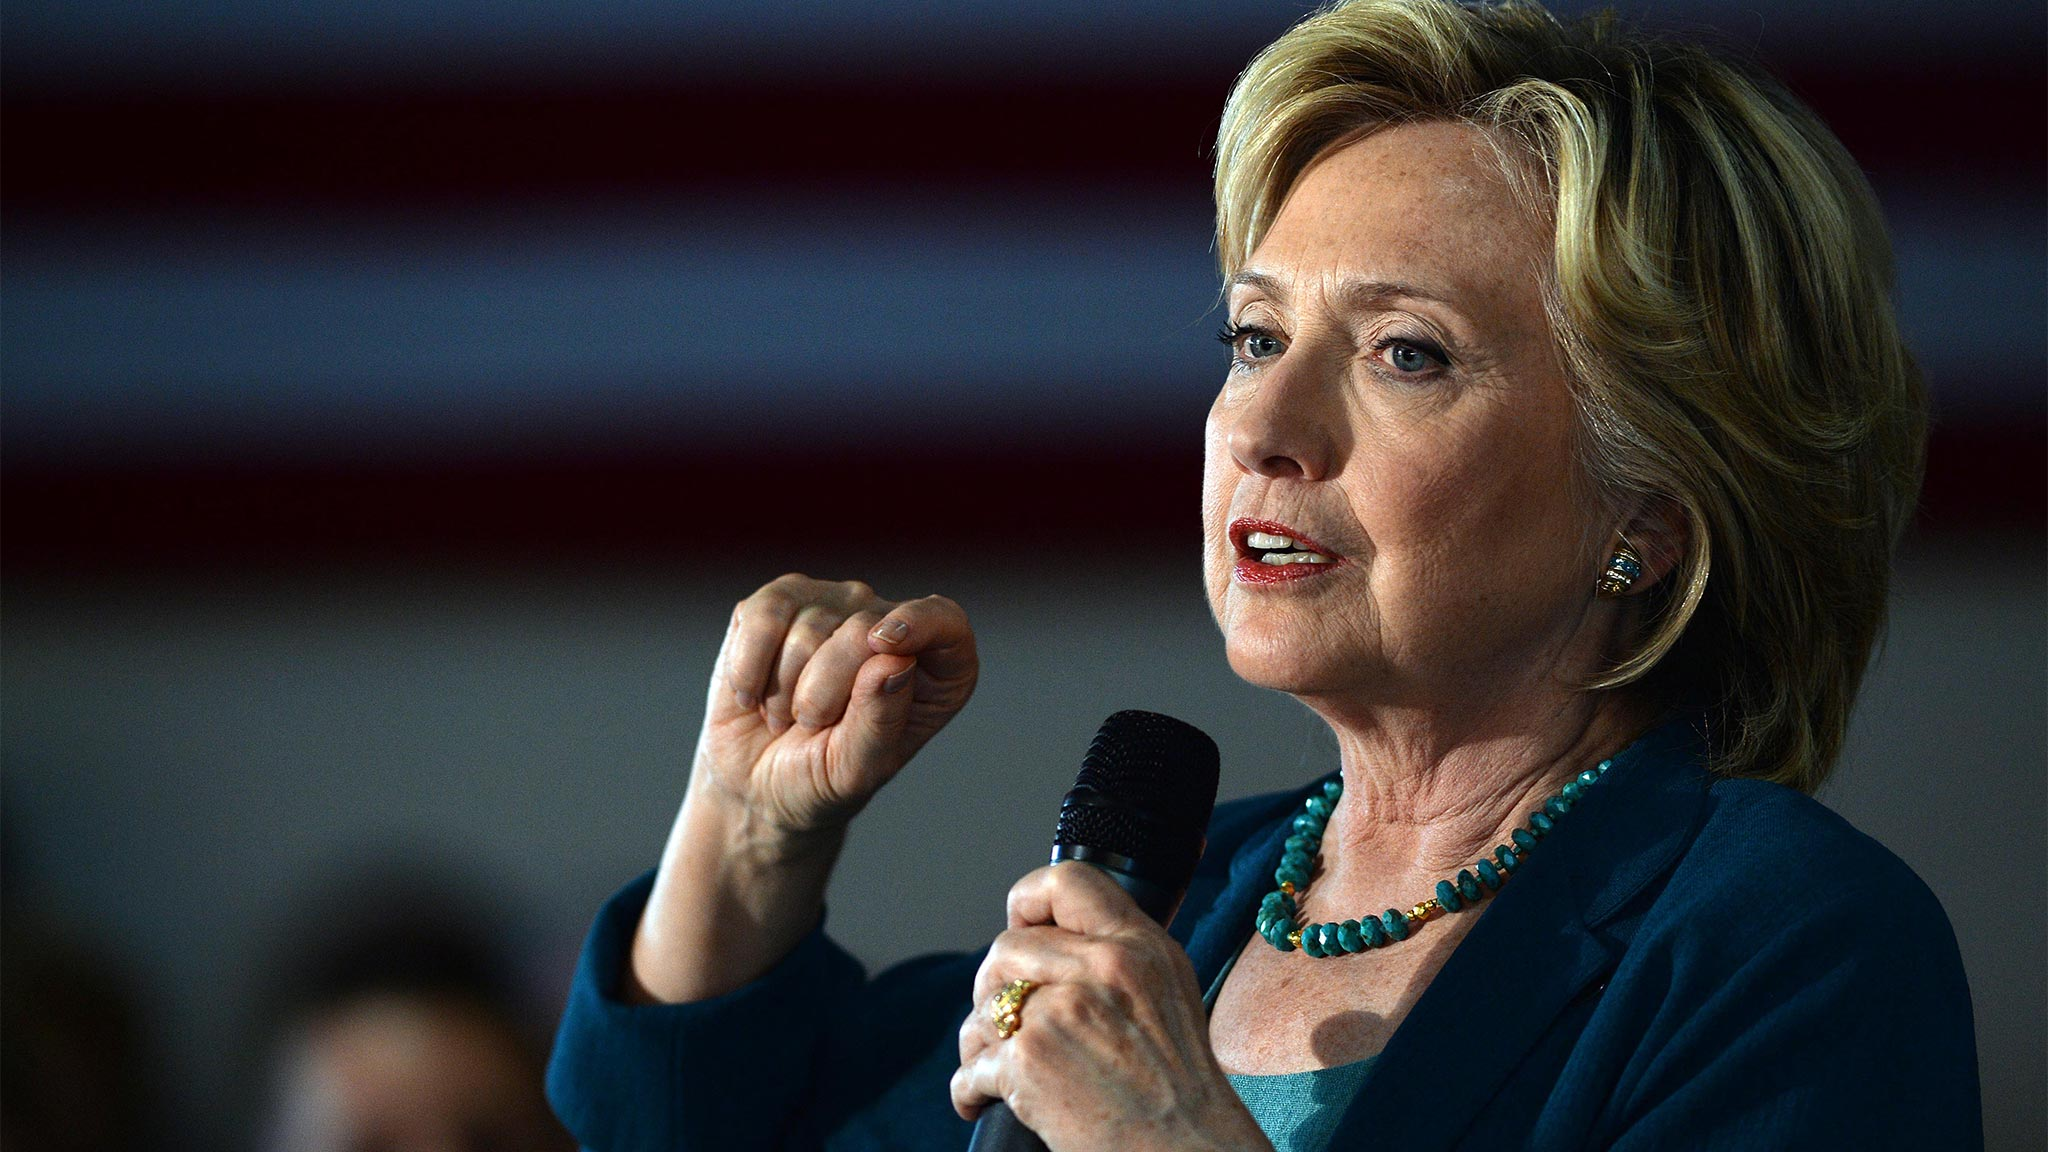 Democratic Presidential candidate Hillary Clinton speaks during a community forum on substance abuse September 17, 2015 in Laconia, New Hampshire. Clinton spent the day campaigning and spoke at on substance abuse. (Photo by Darren McCollester/Getty Images)